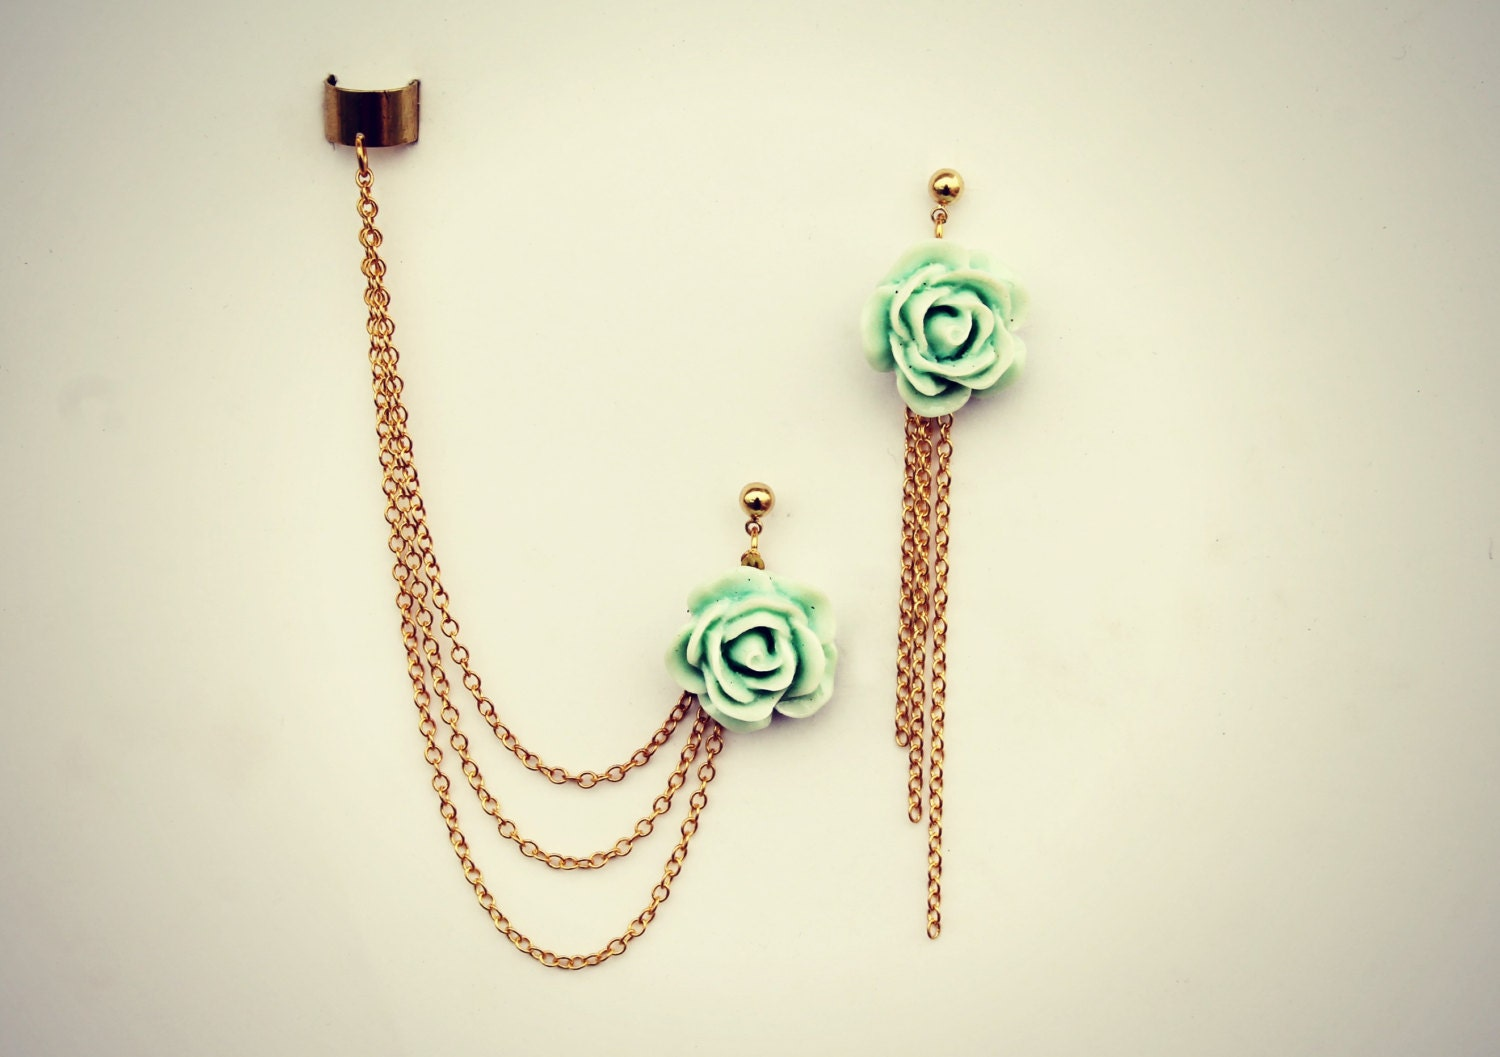 Mint Rose Ear Cuff And Earrings Chain Ear Cuff Ear Cuff With